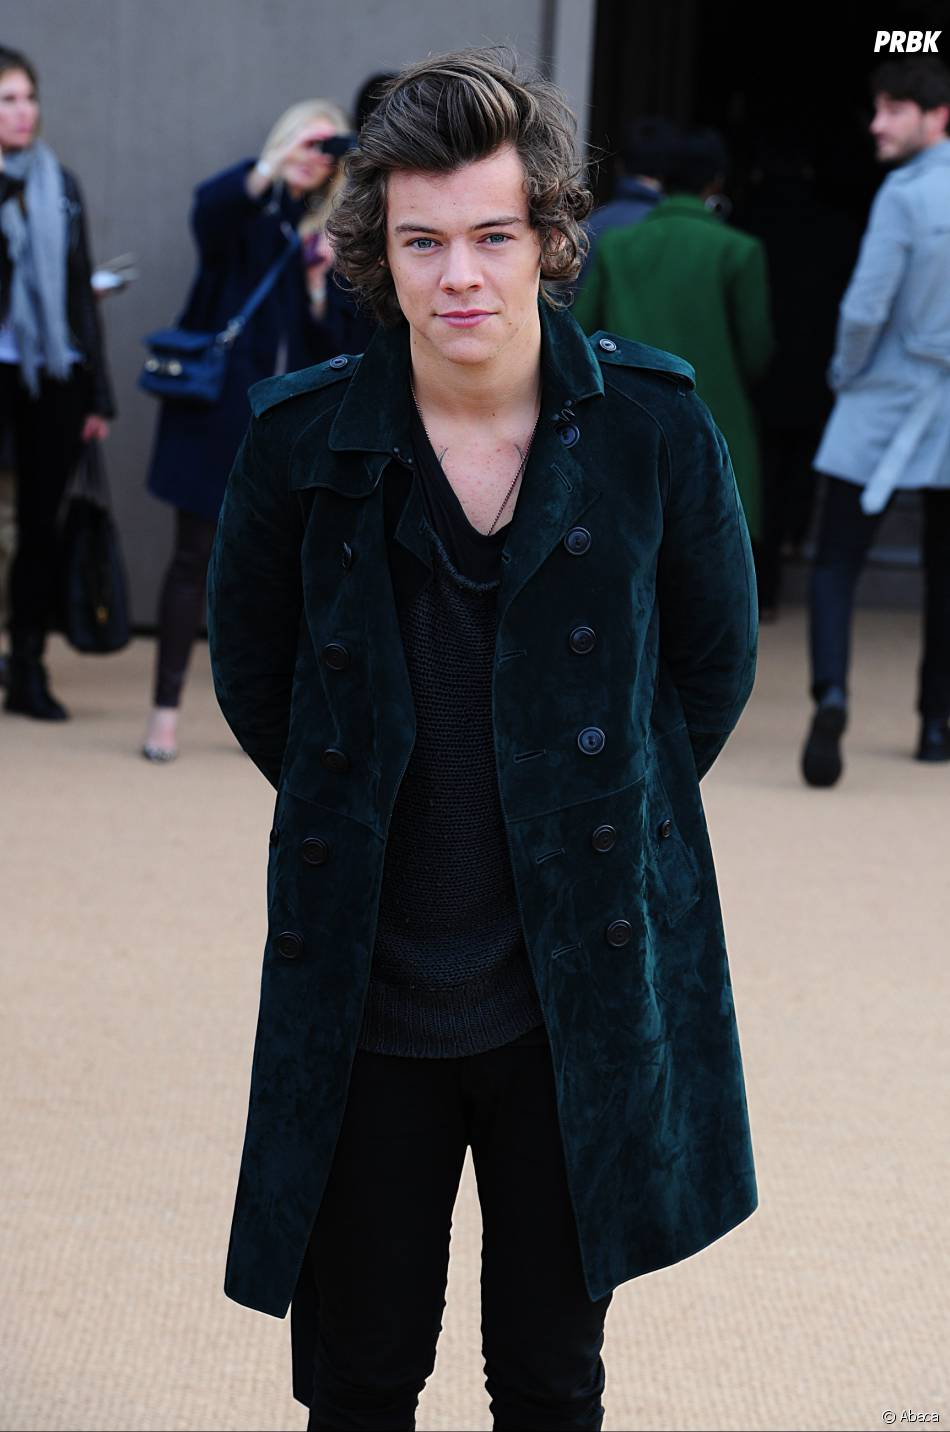 Harry Styles source d'inspiration de Taylor Swift pour 1989